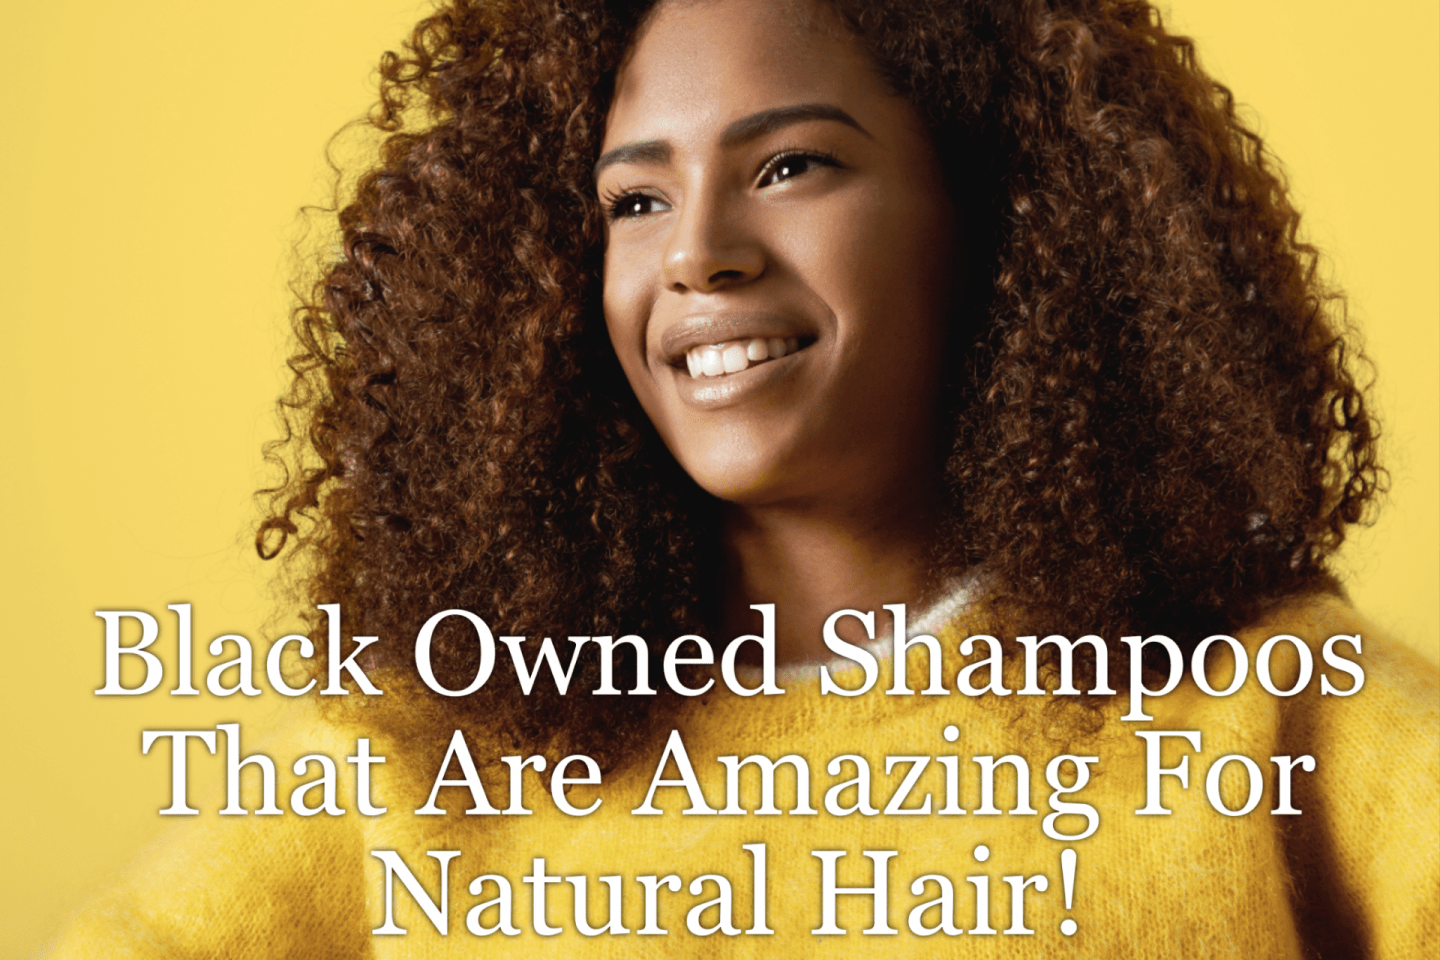 Black owned Shampoos for natural hair are a big topic in our community and worth digging into to find the best. Check out our faves in this list of 10.